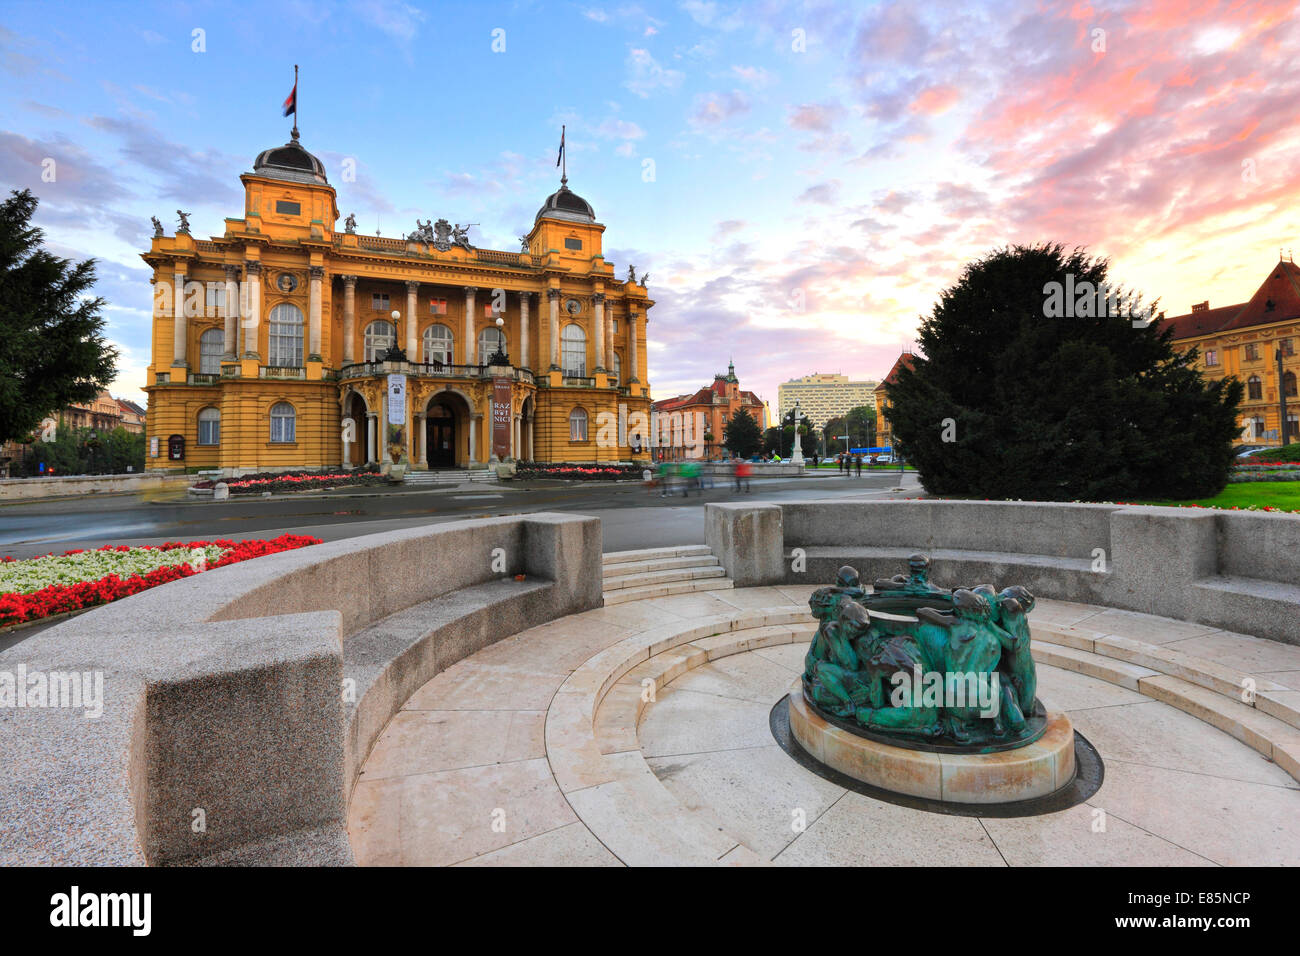 Zagreb, national theater in sunset. - Stock Image